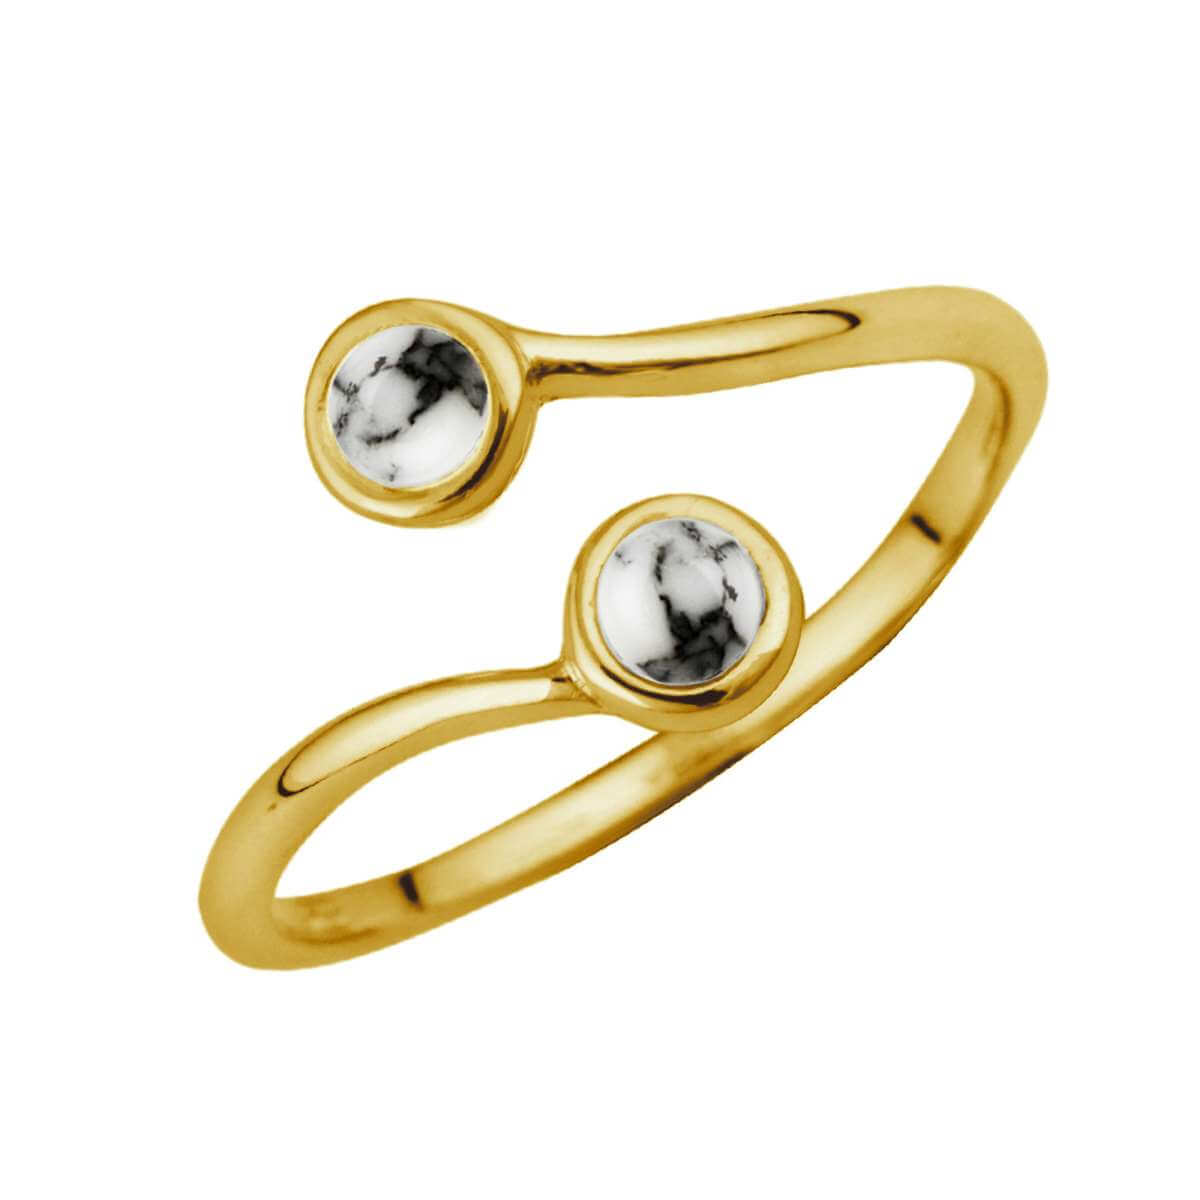 Gold Plated Sterling Silver & Faux Howlite Adjustable Ring